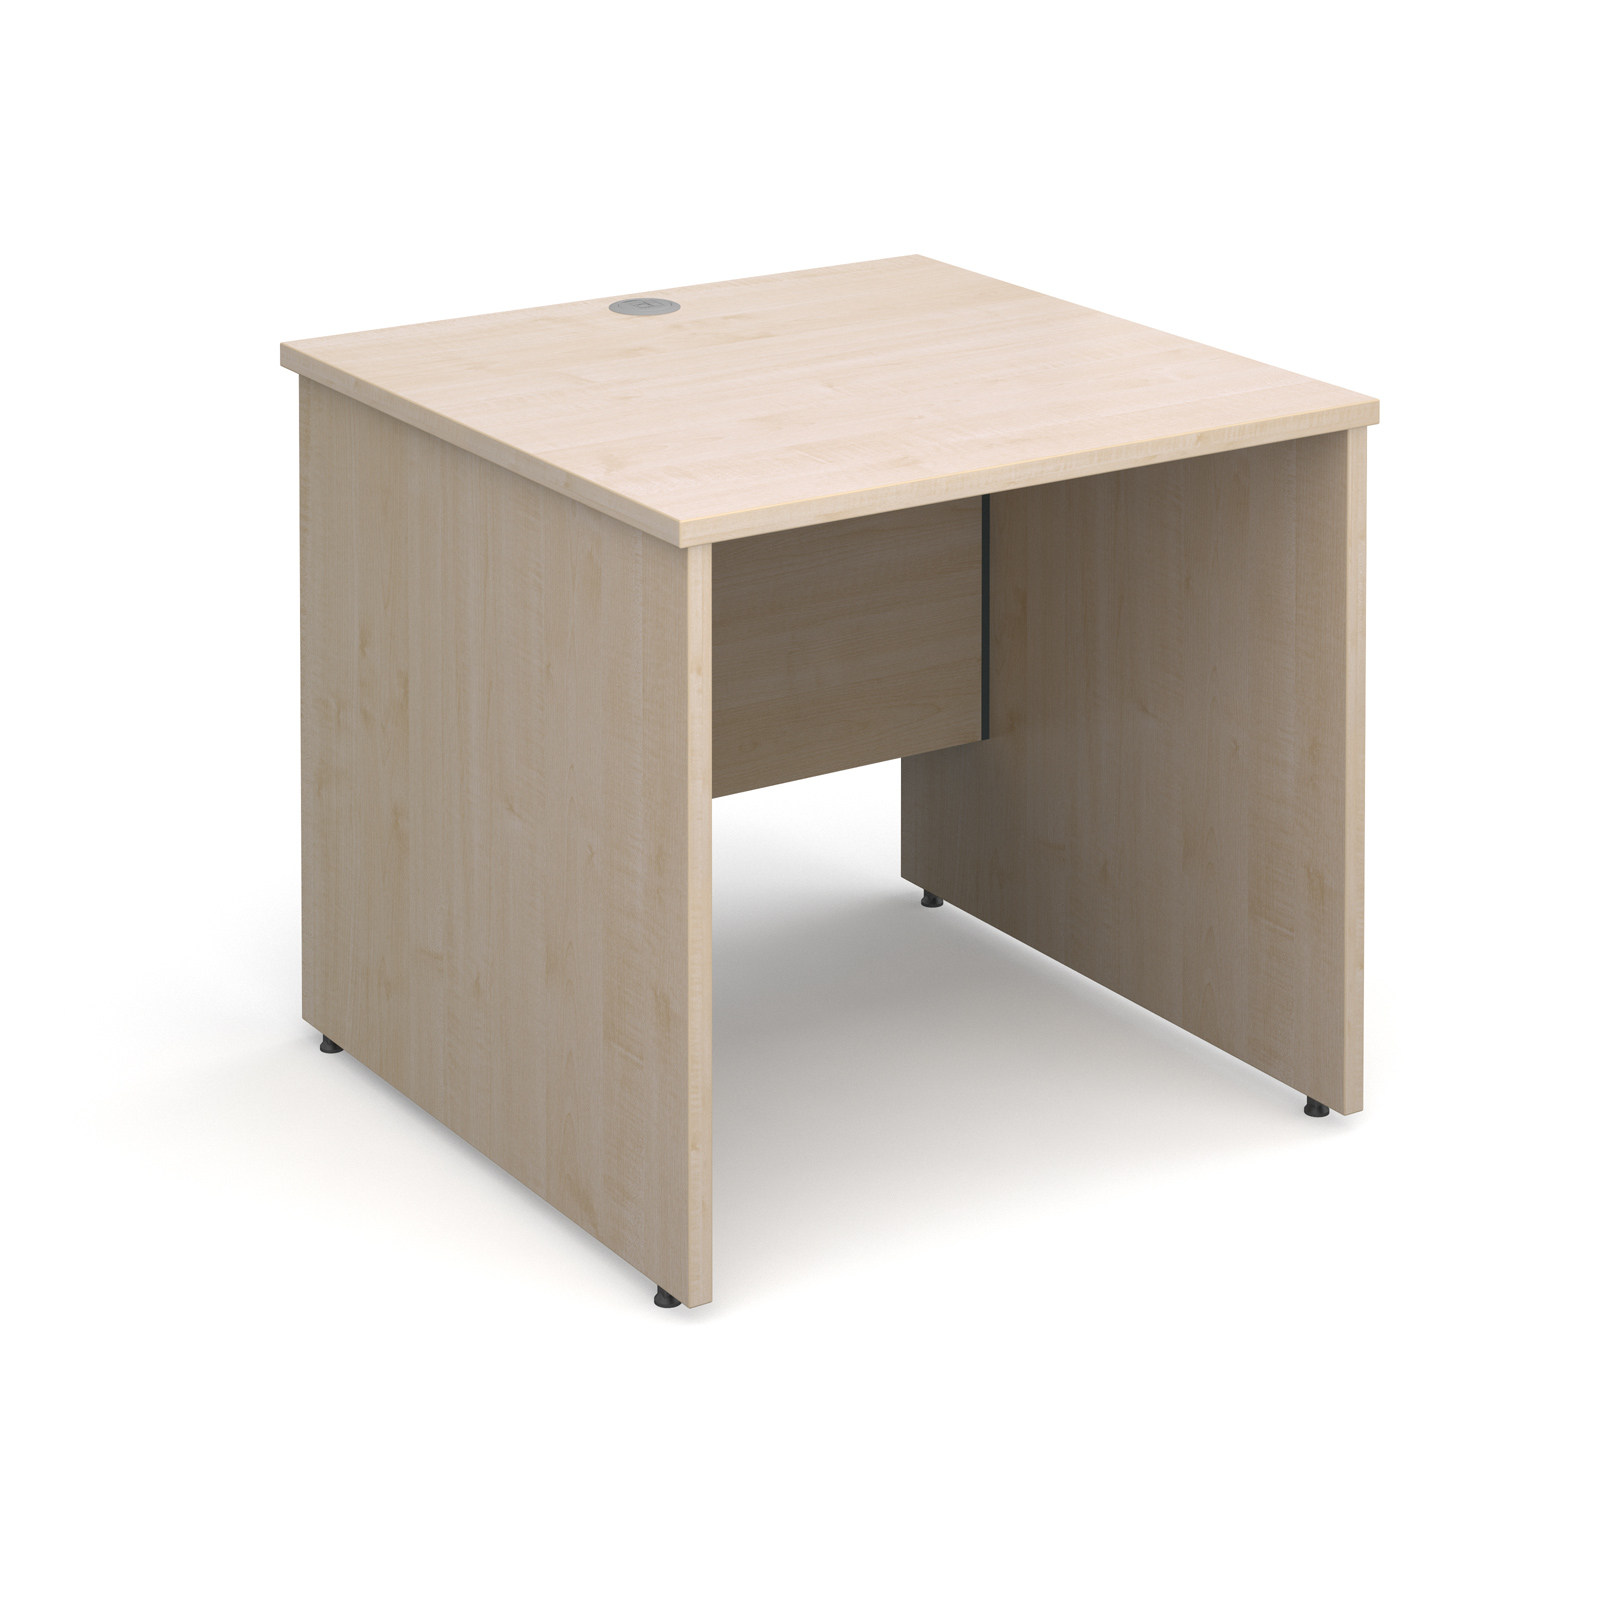 Dams Maestro 25 PL Straight Office Desk